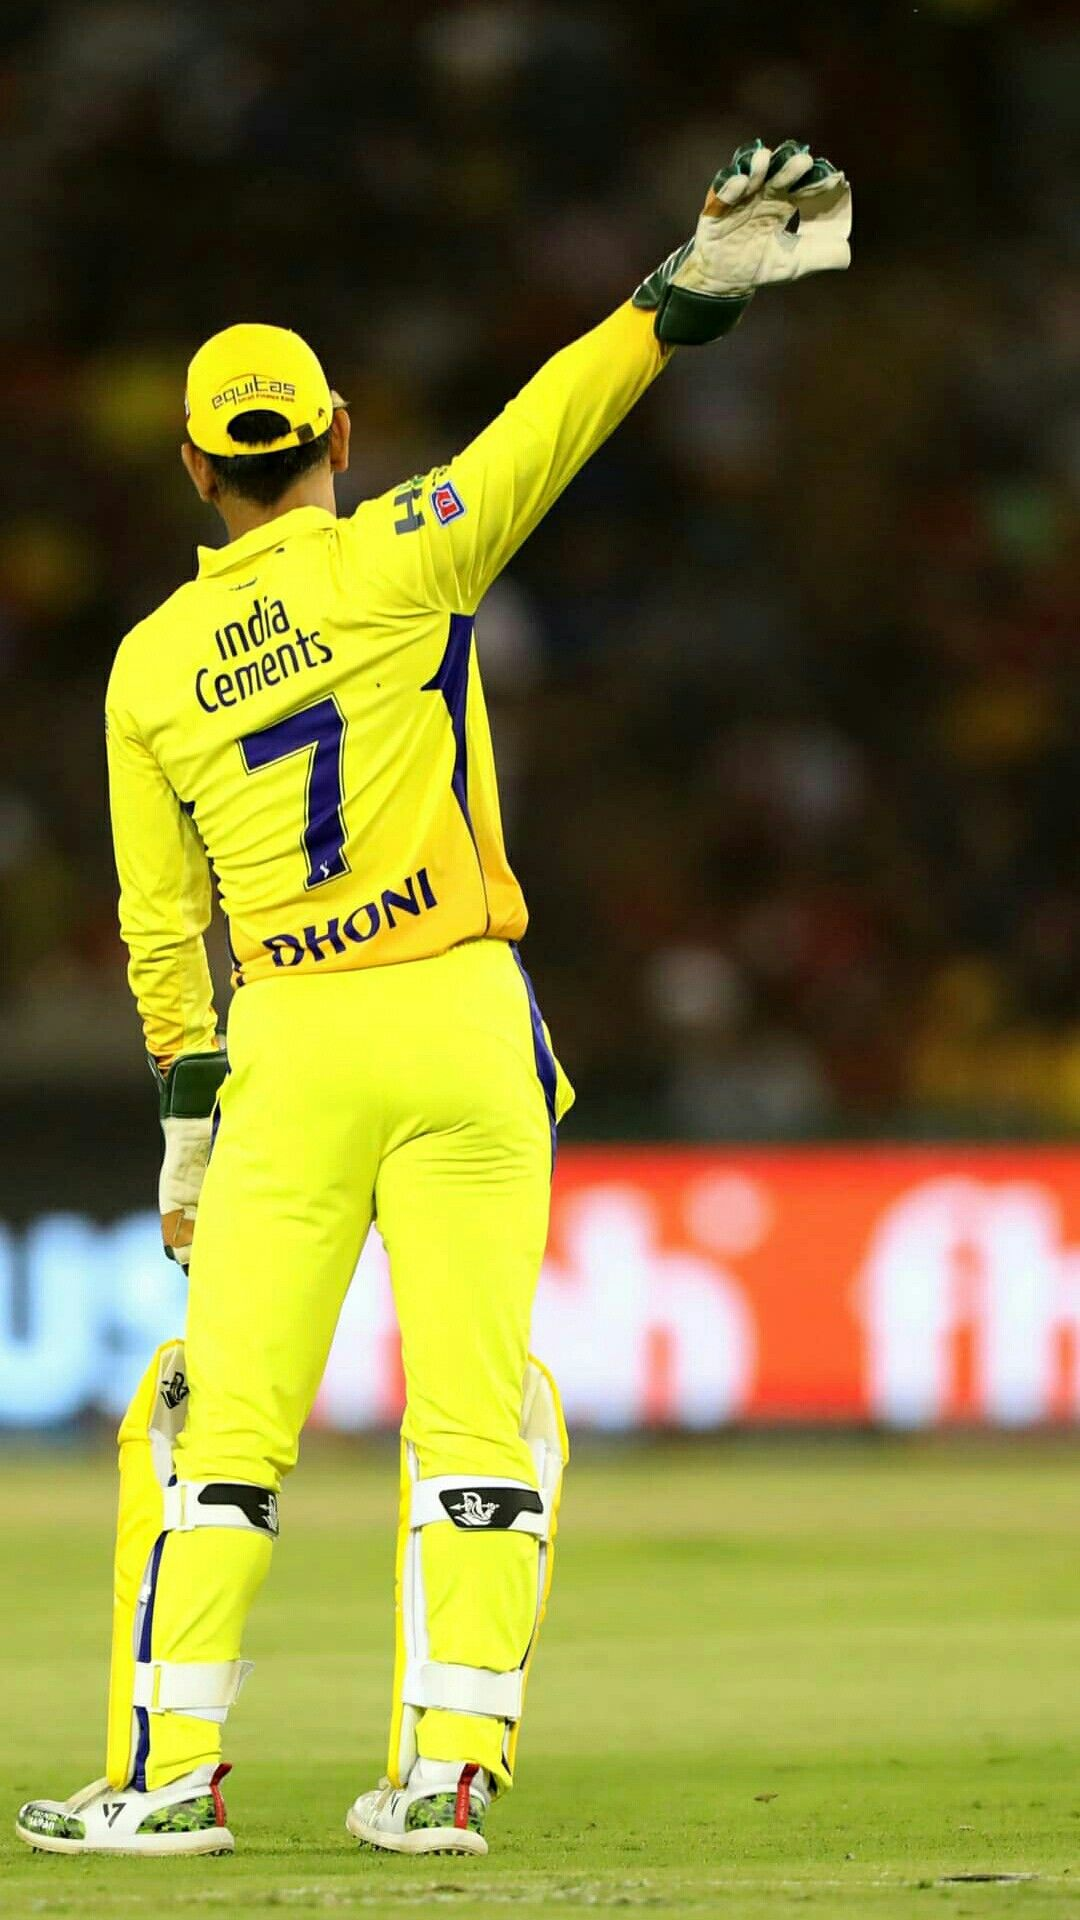 Mahibali Dhoni Wallpapers Ms Dhoni Wallpapers Cricket Wallpapers